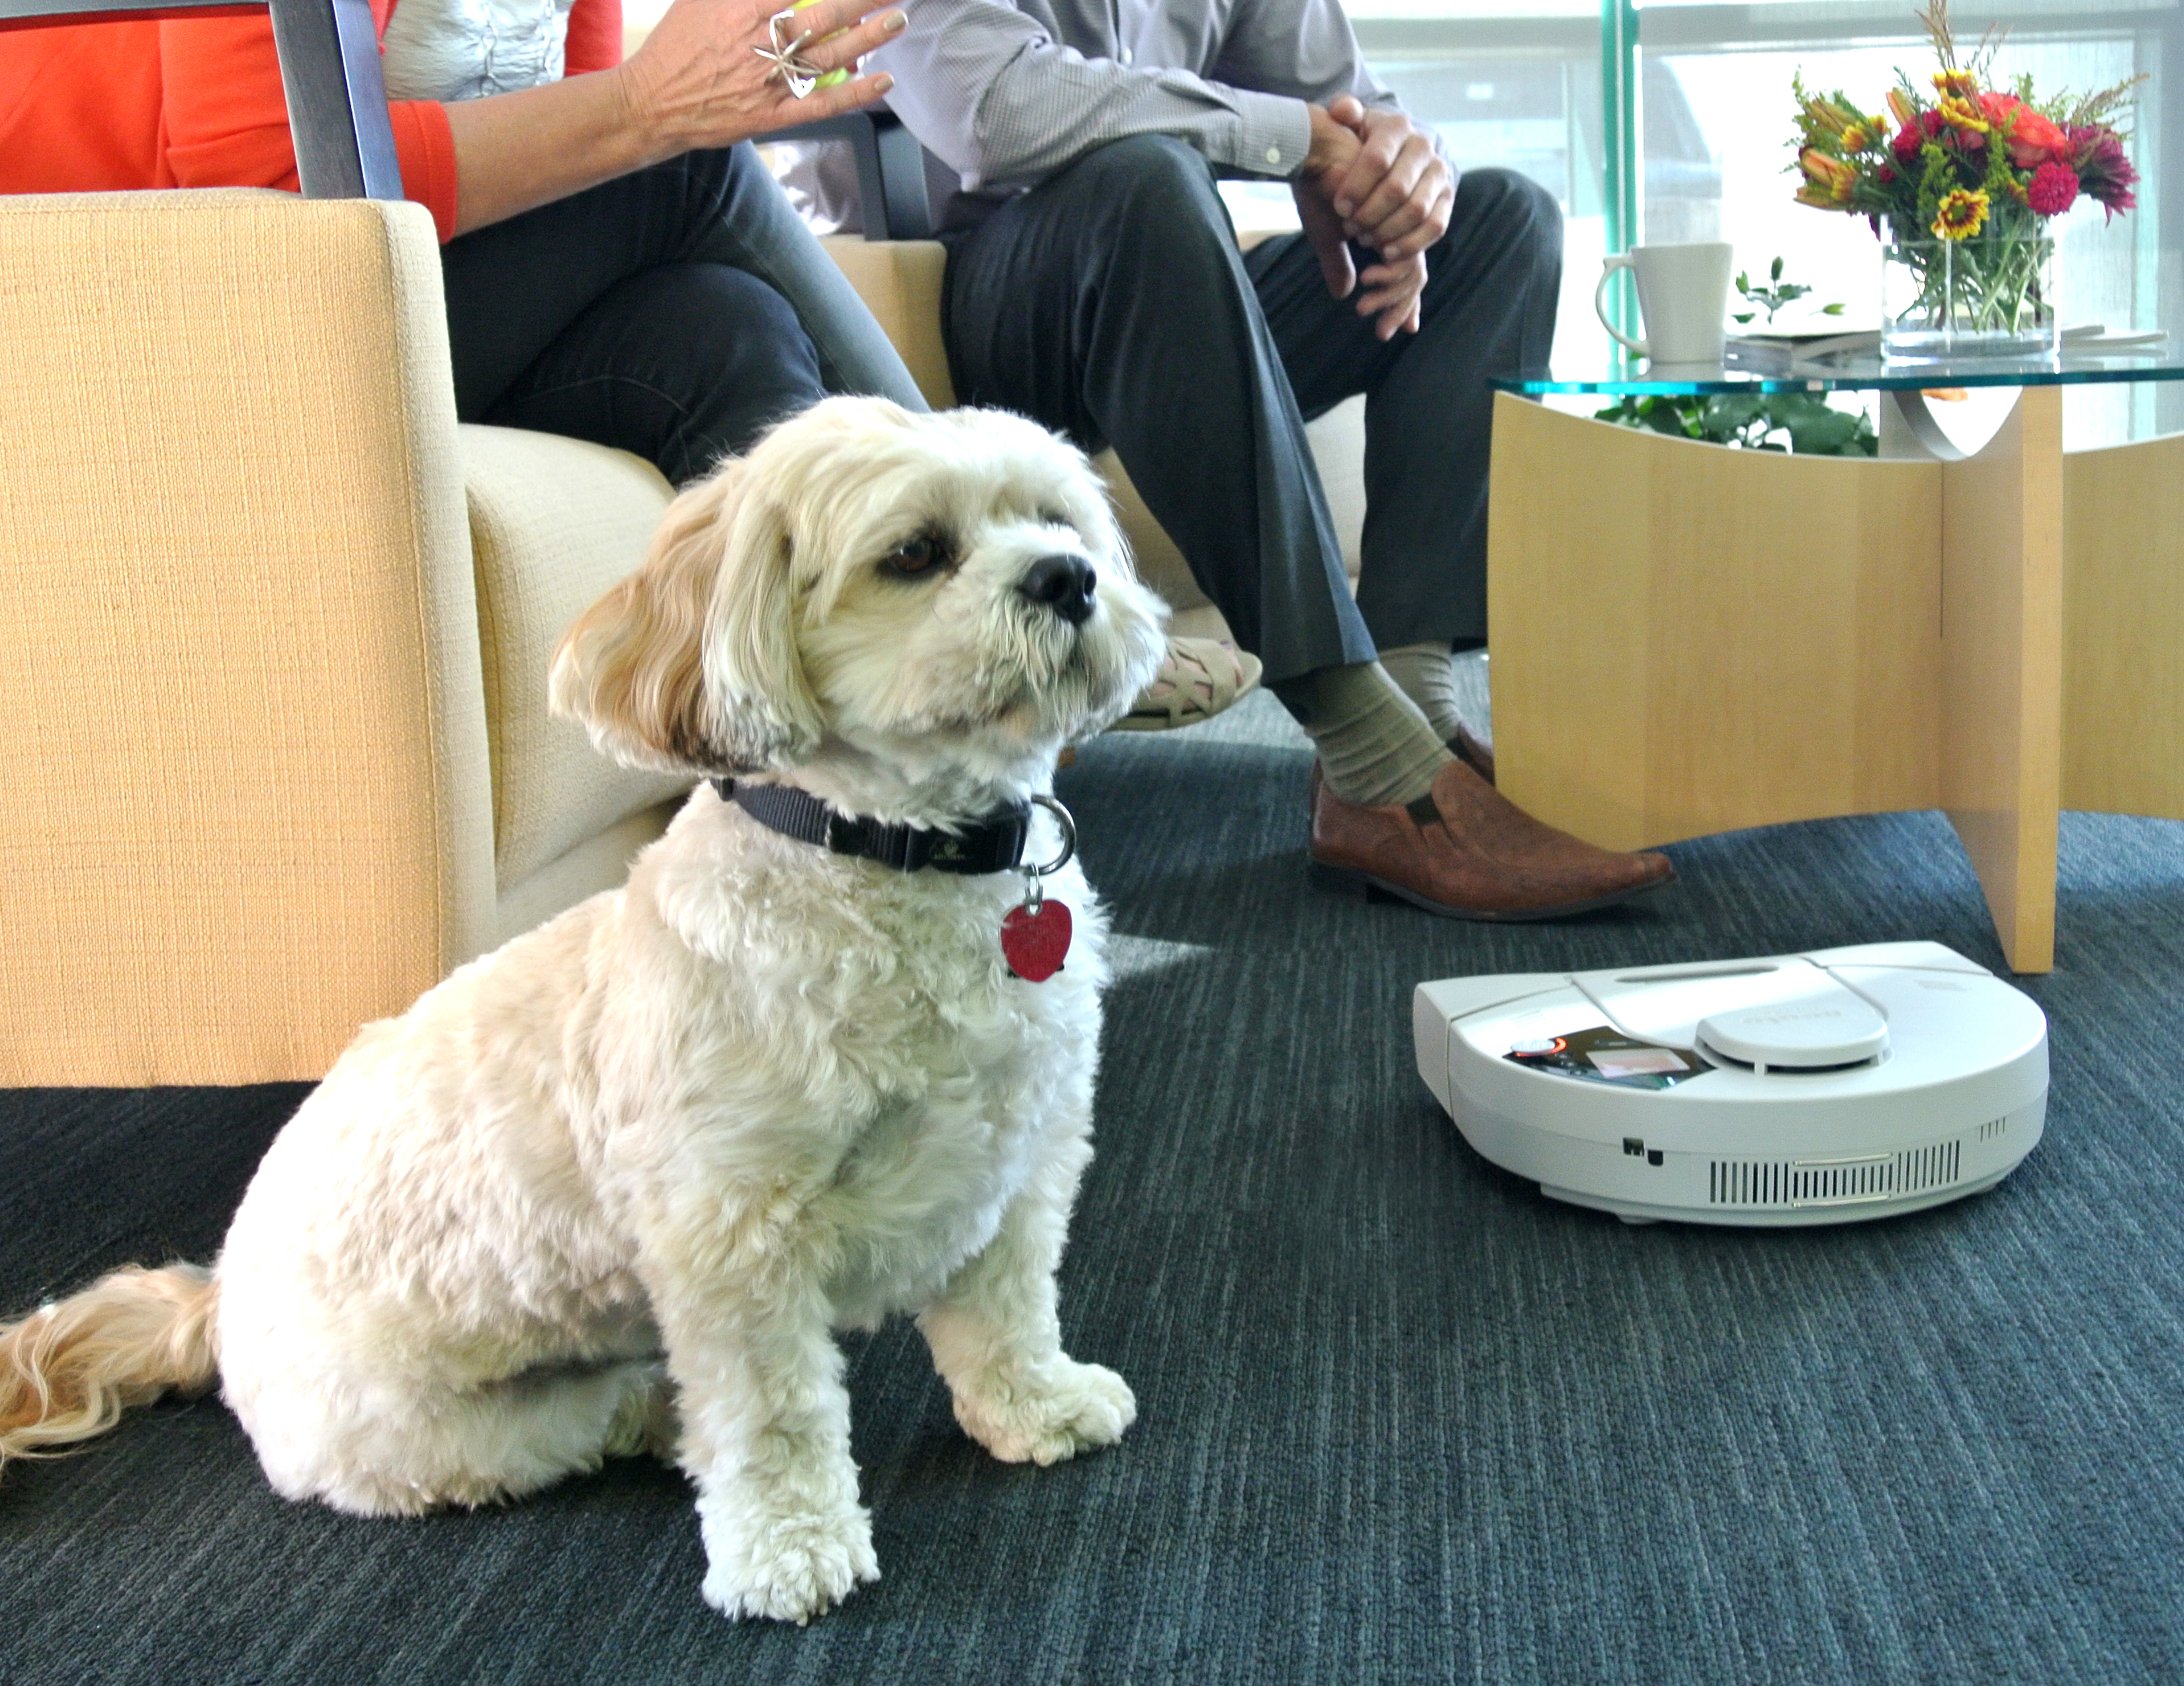 The Neato robot vacuum picks up pet hair better than any other robot vacuum tested, according to CNET. (Photo: Business Wire)